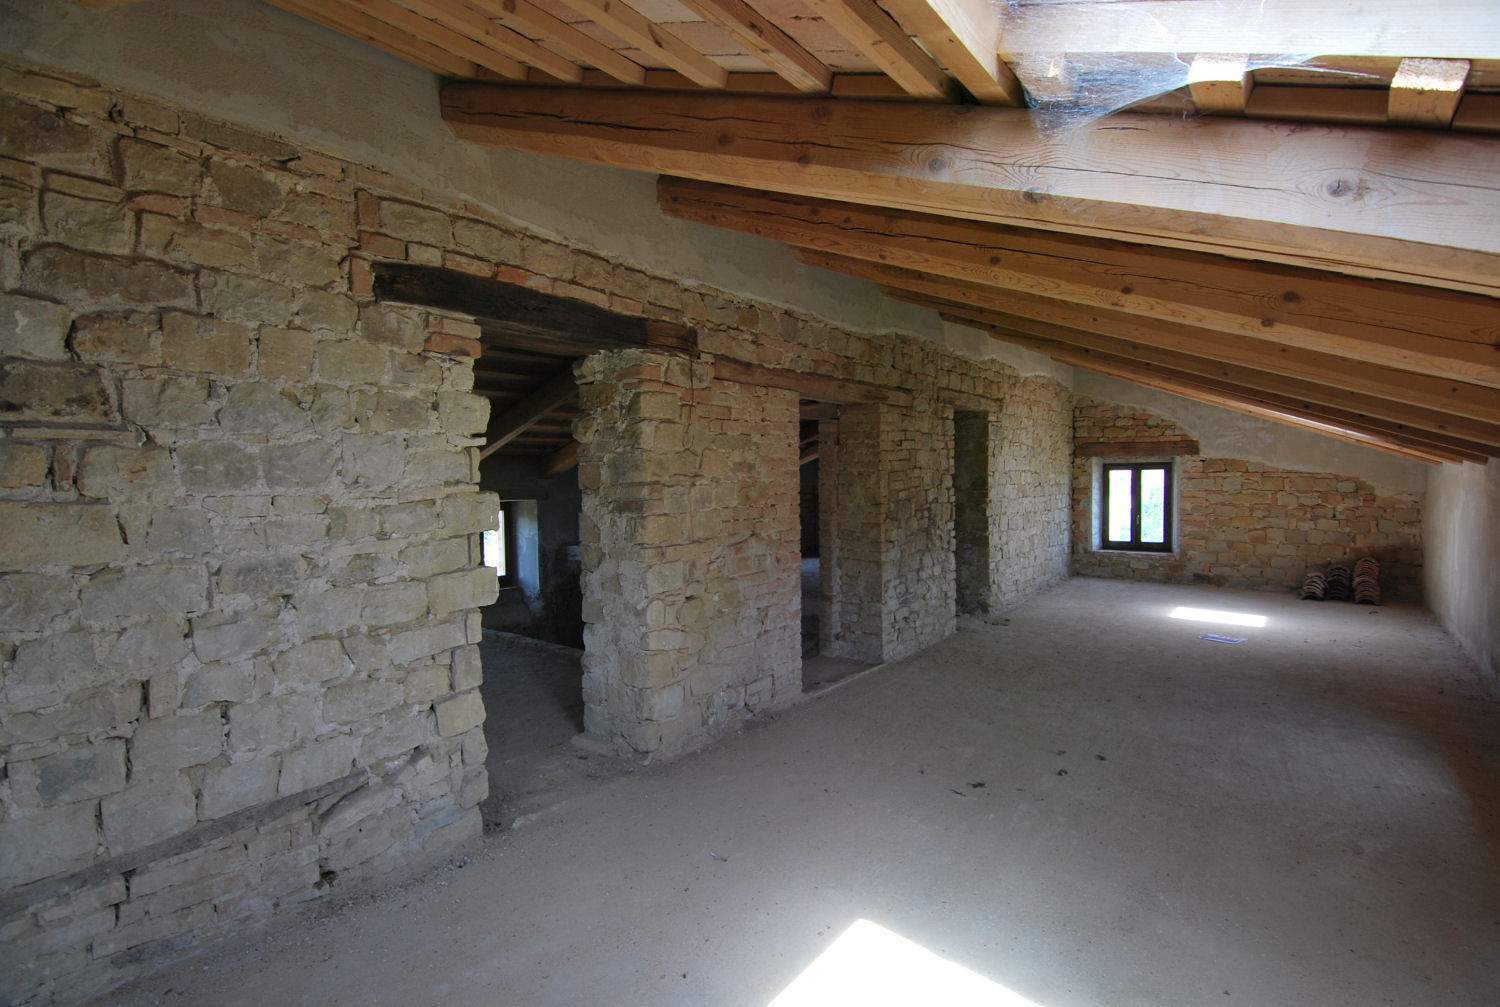 Stone country house in Penna San Giovanni